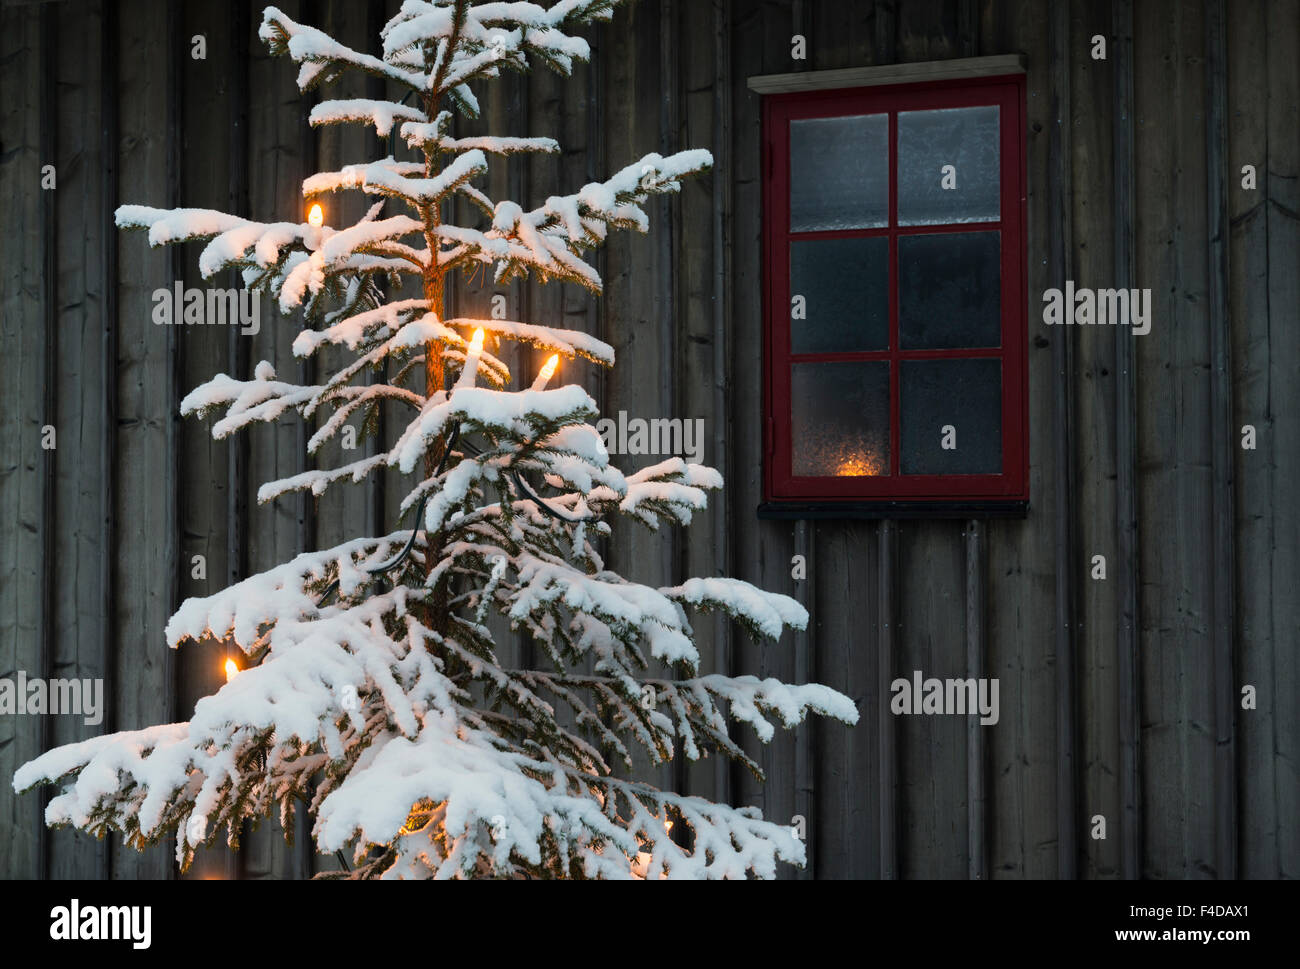 Snow covered Christmas tree, Sweden - Stock Image